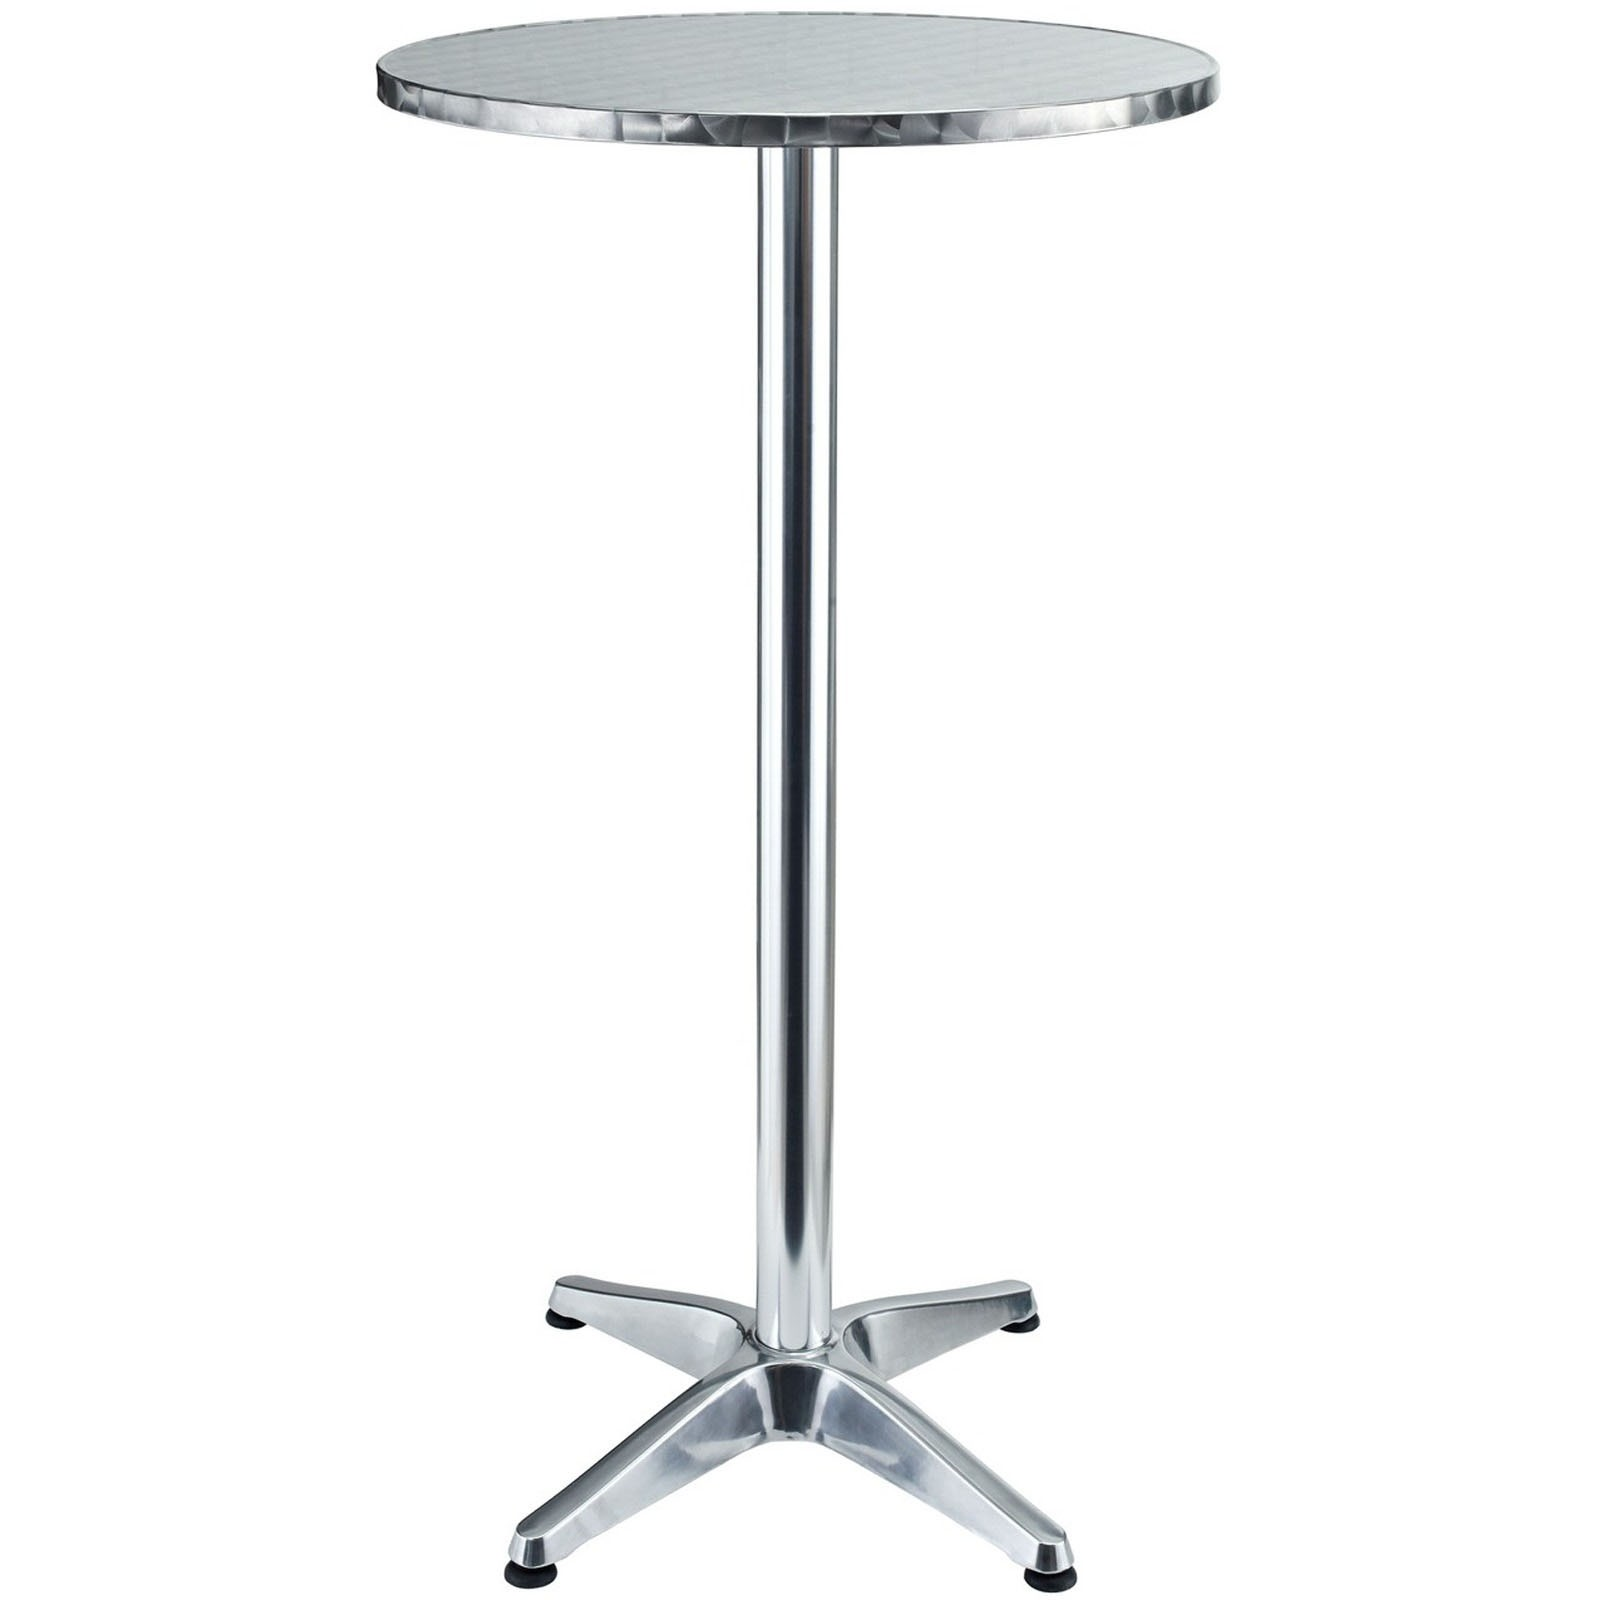 Merveilleux A Piece Of Tall Bar Table With Round Metal Tabletop And Base With Casters